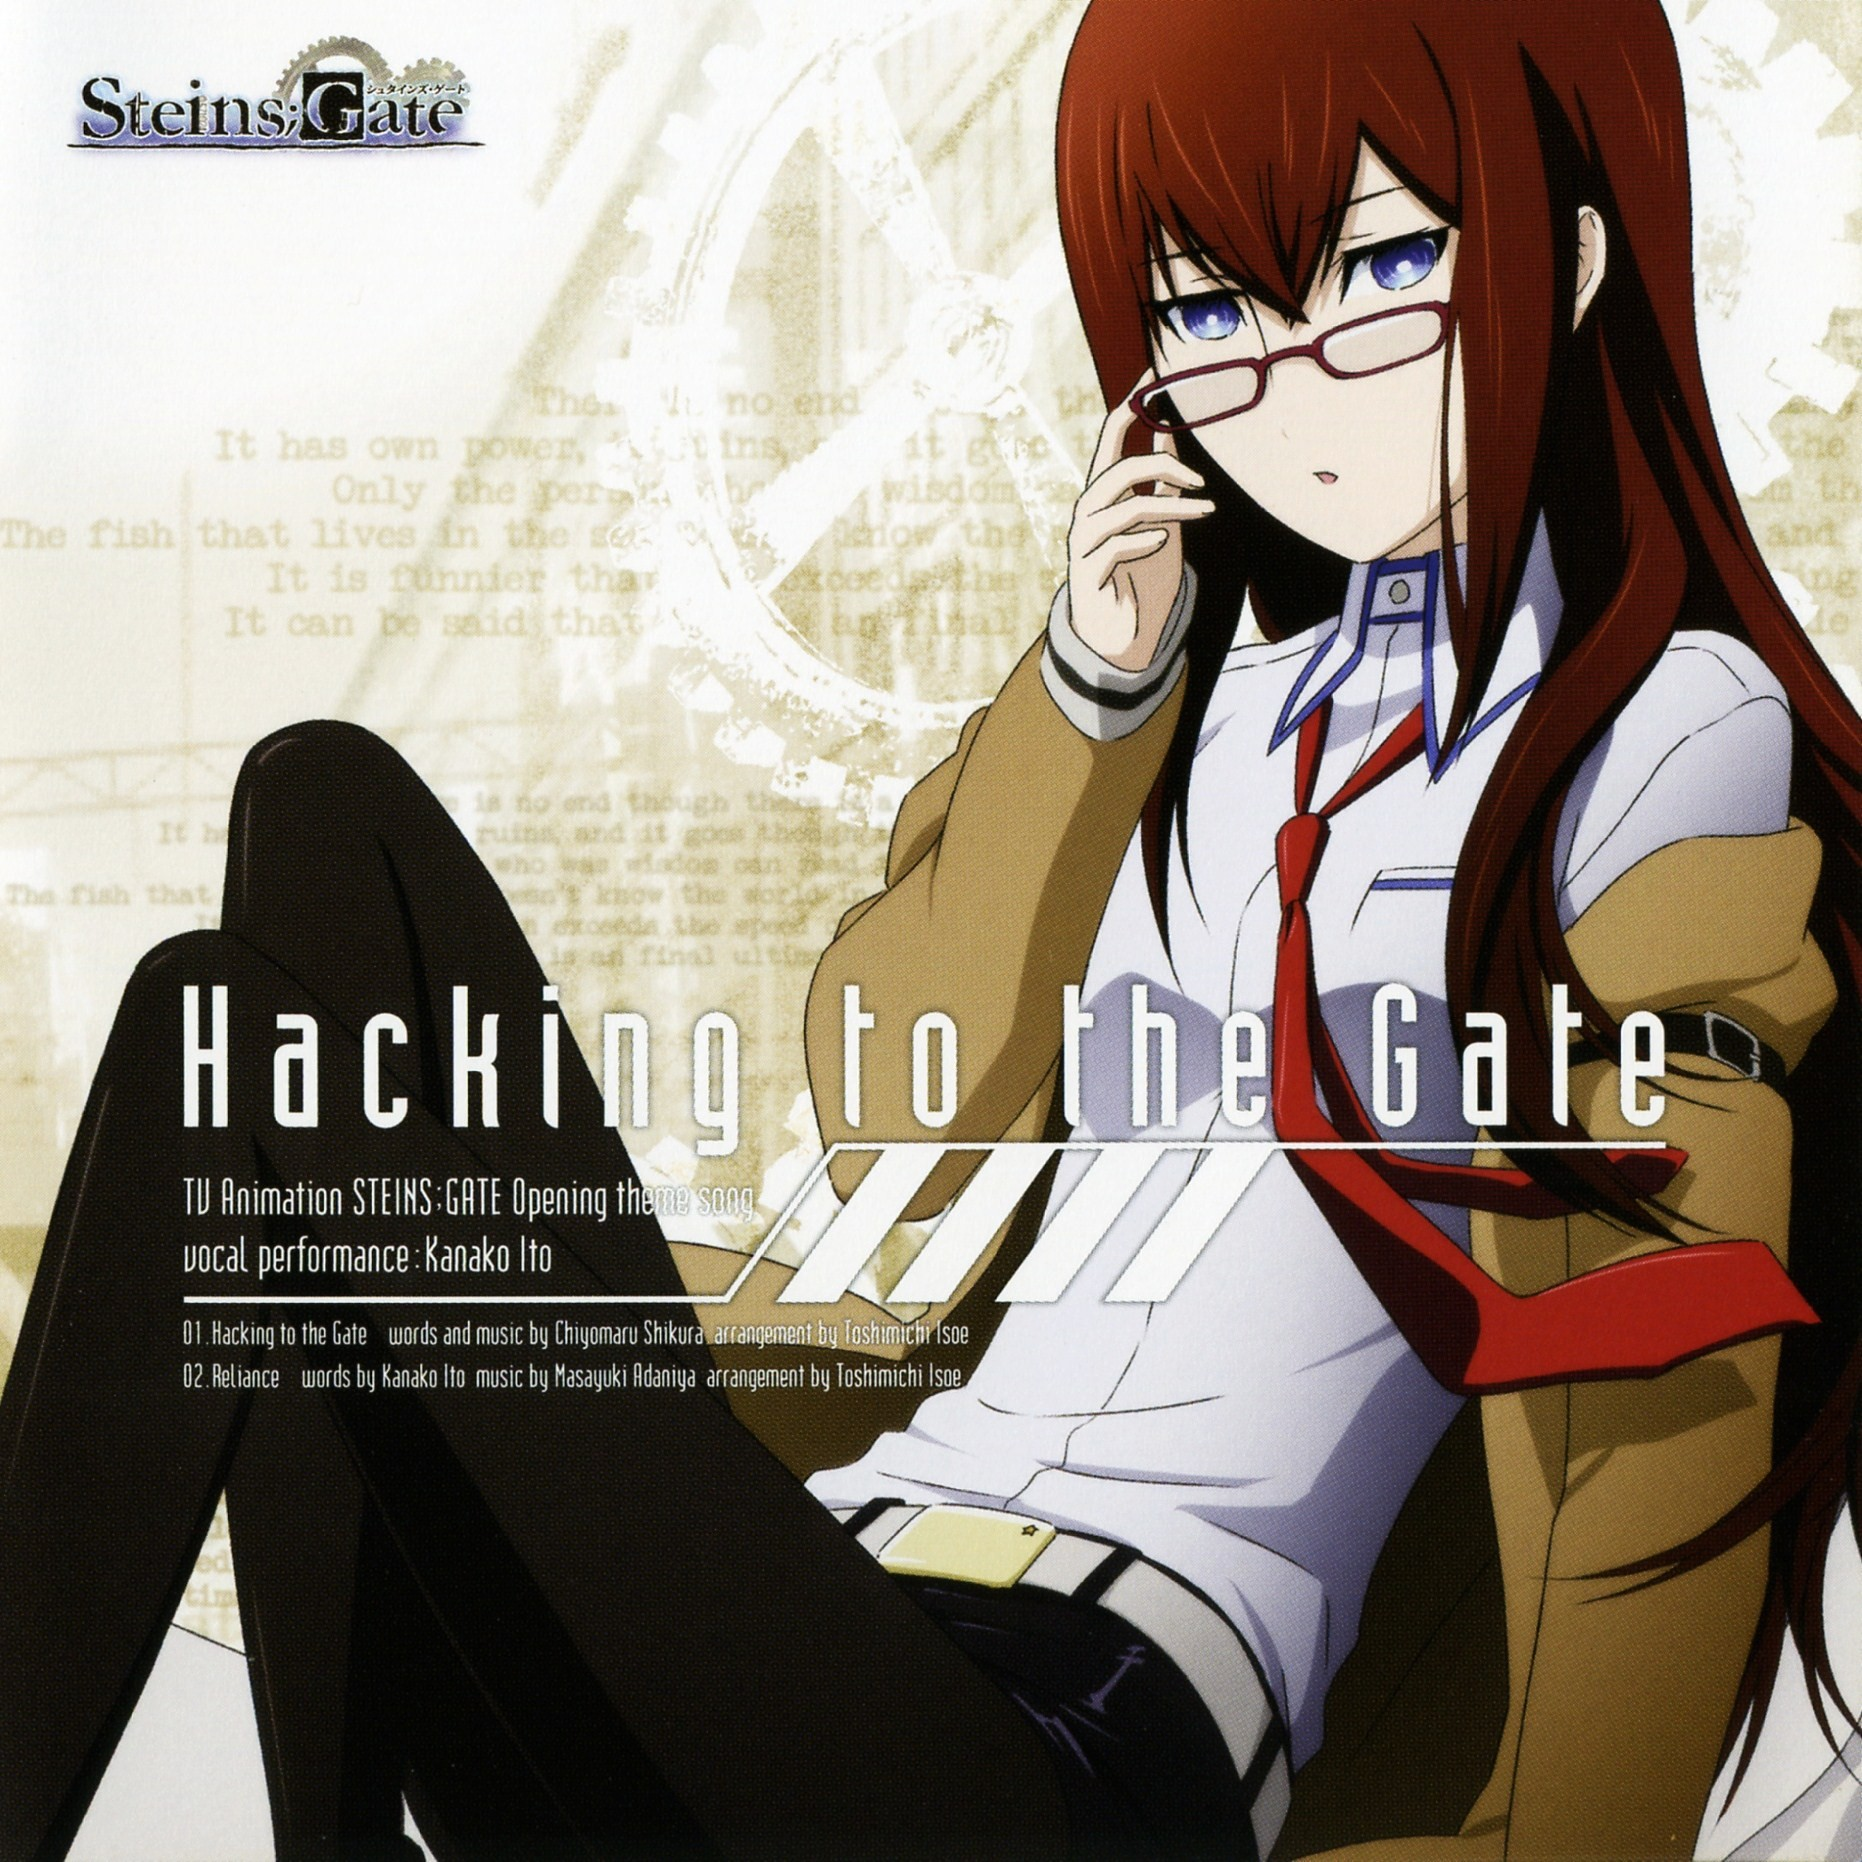 Hacking To The Gate Steins Gate Wiki Fandom Powered By Wikia # Rangement Tele Et Sono